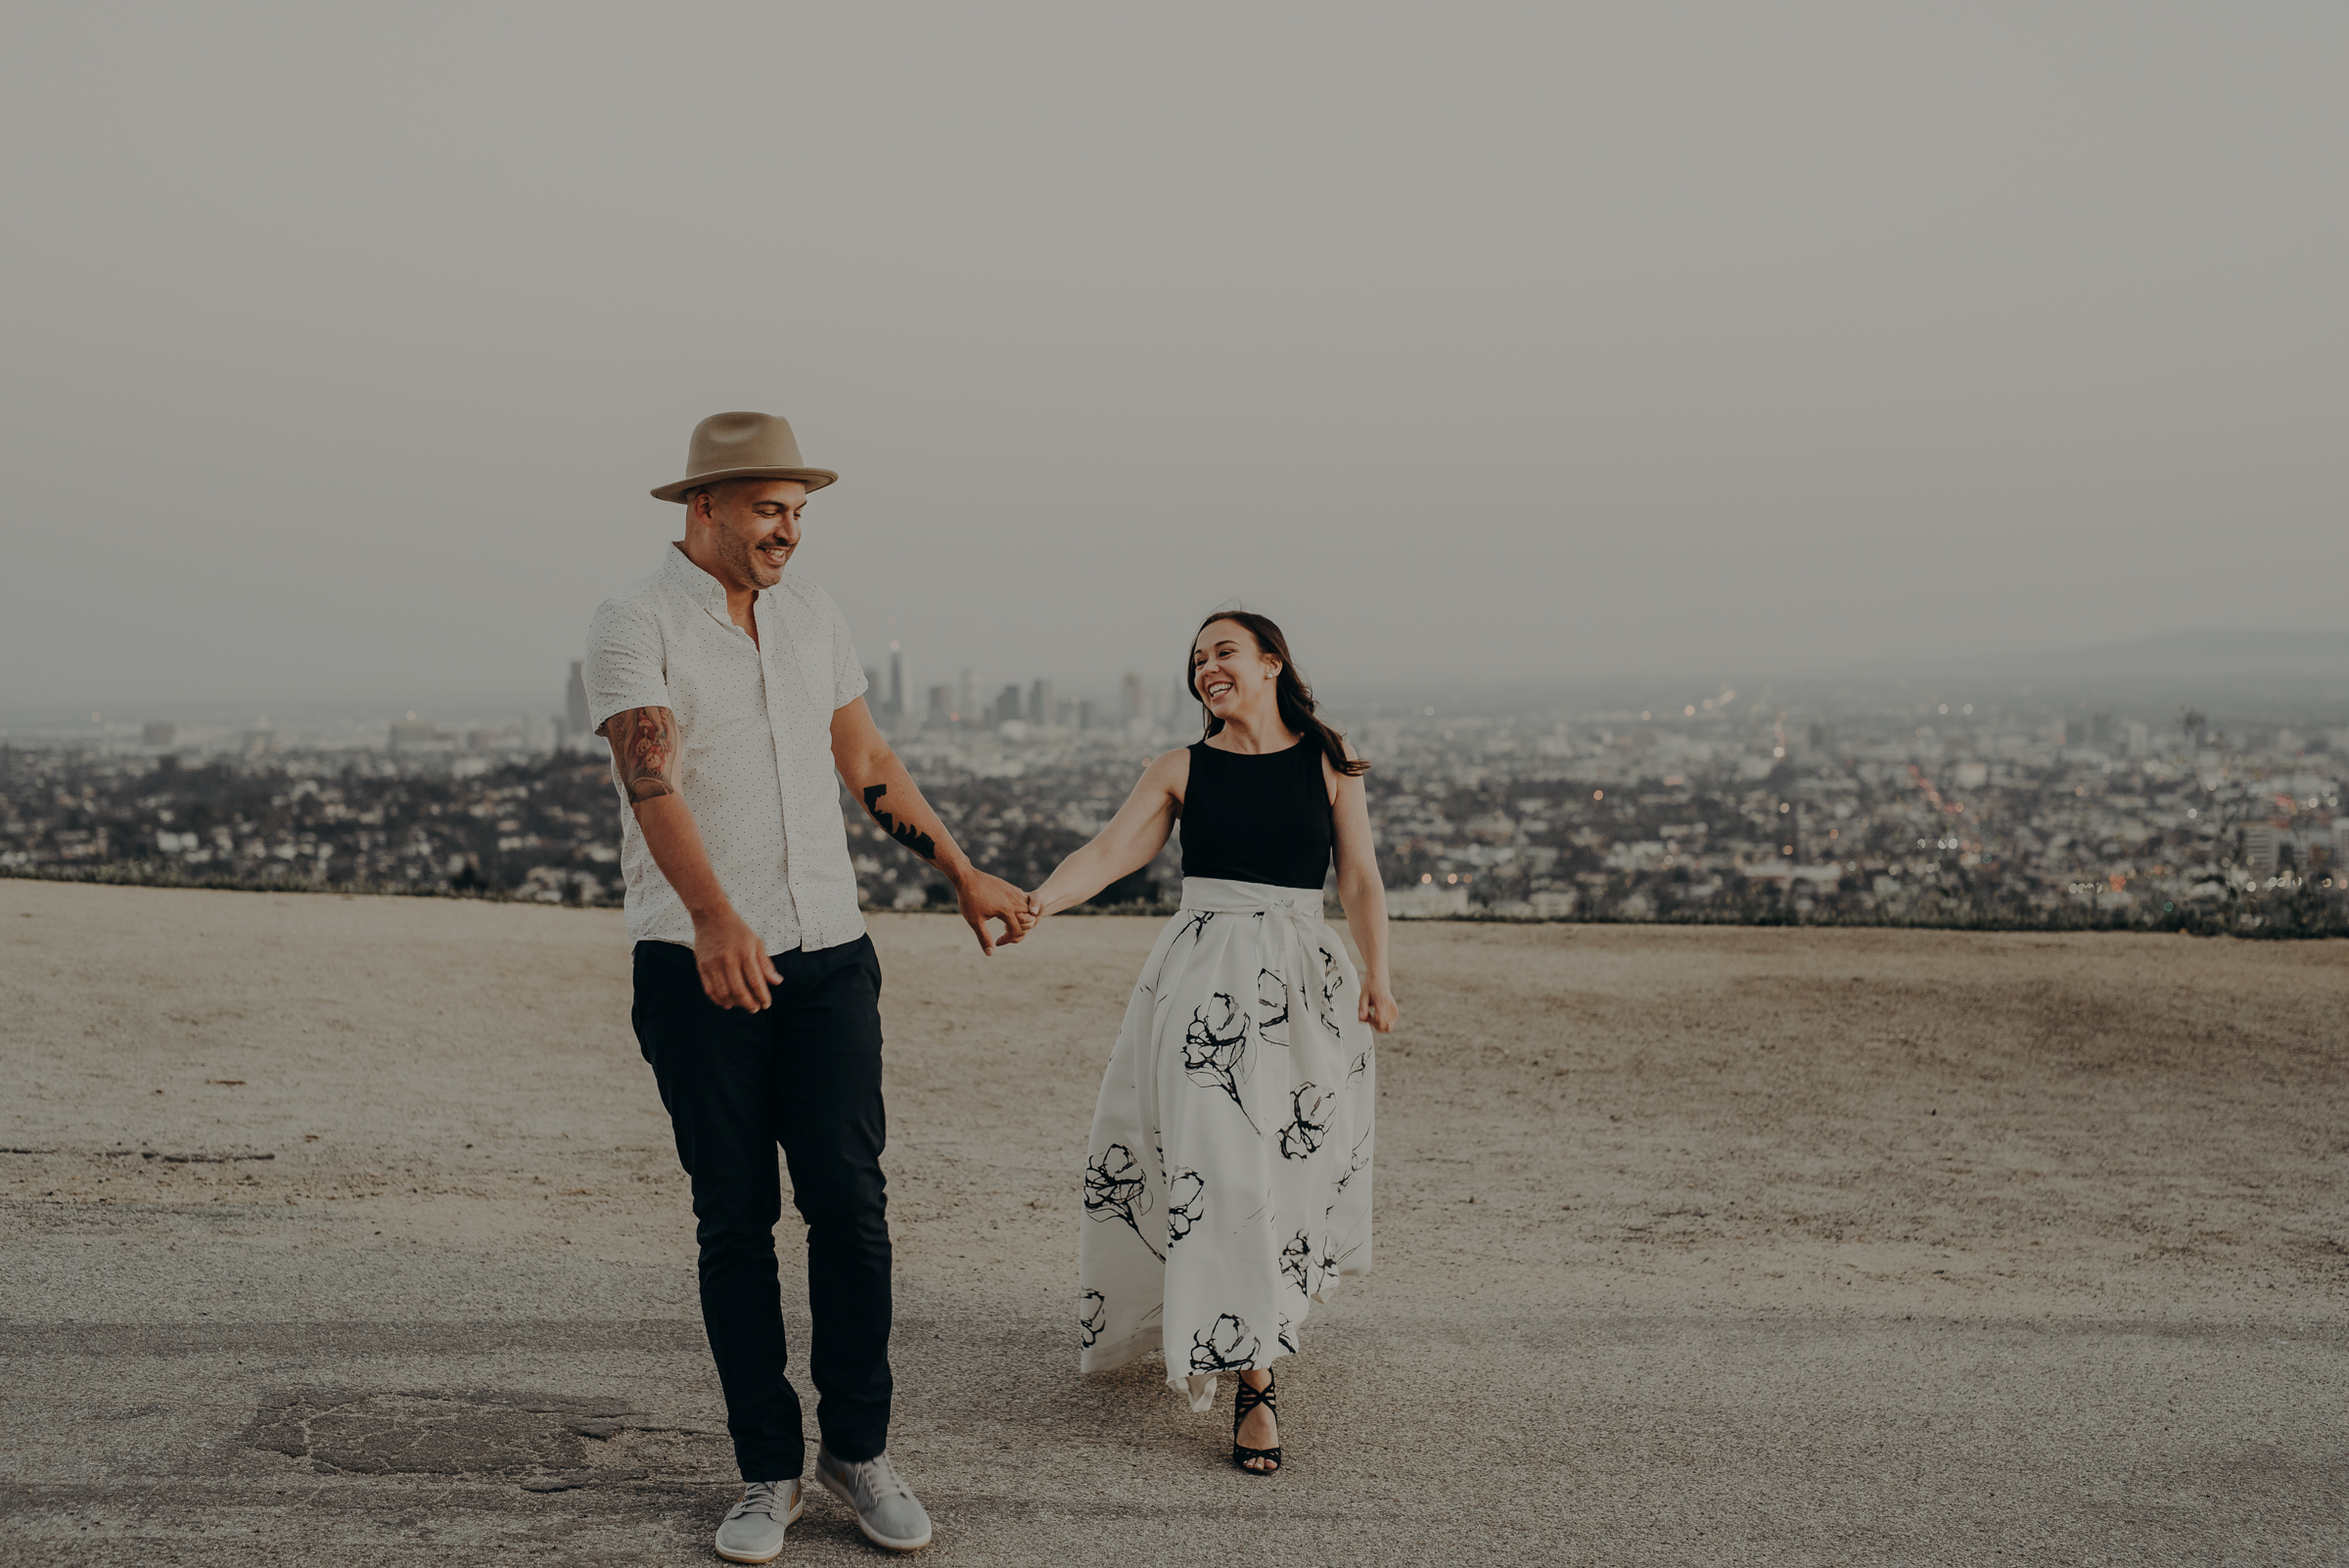 Los Angeles Wedding Photographers - Griffith Park Engagement - IsaiahAndTaylor.com-068.jpg